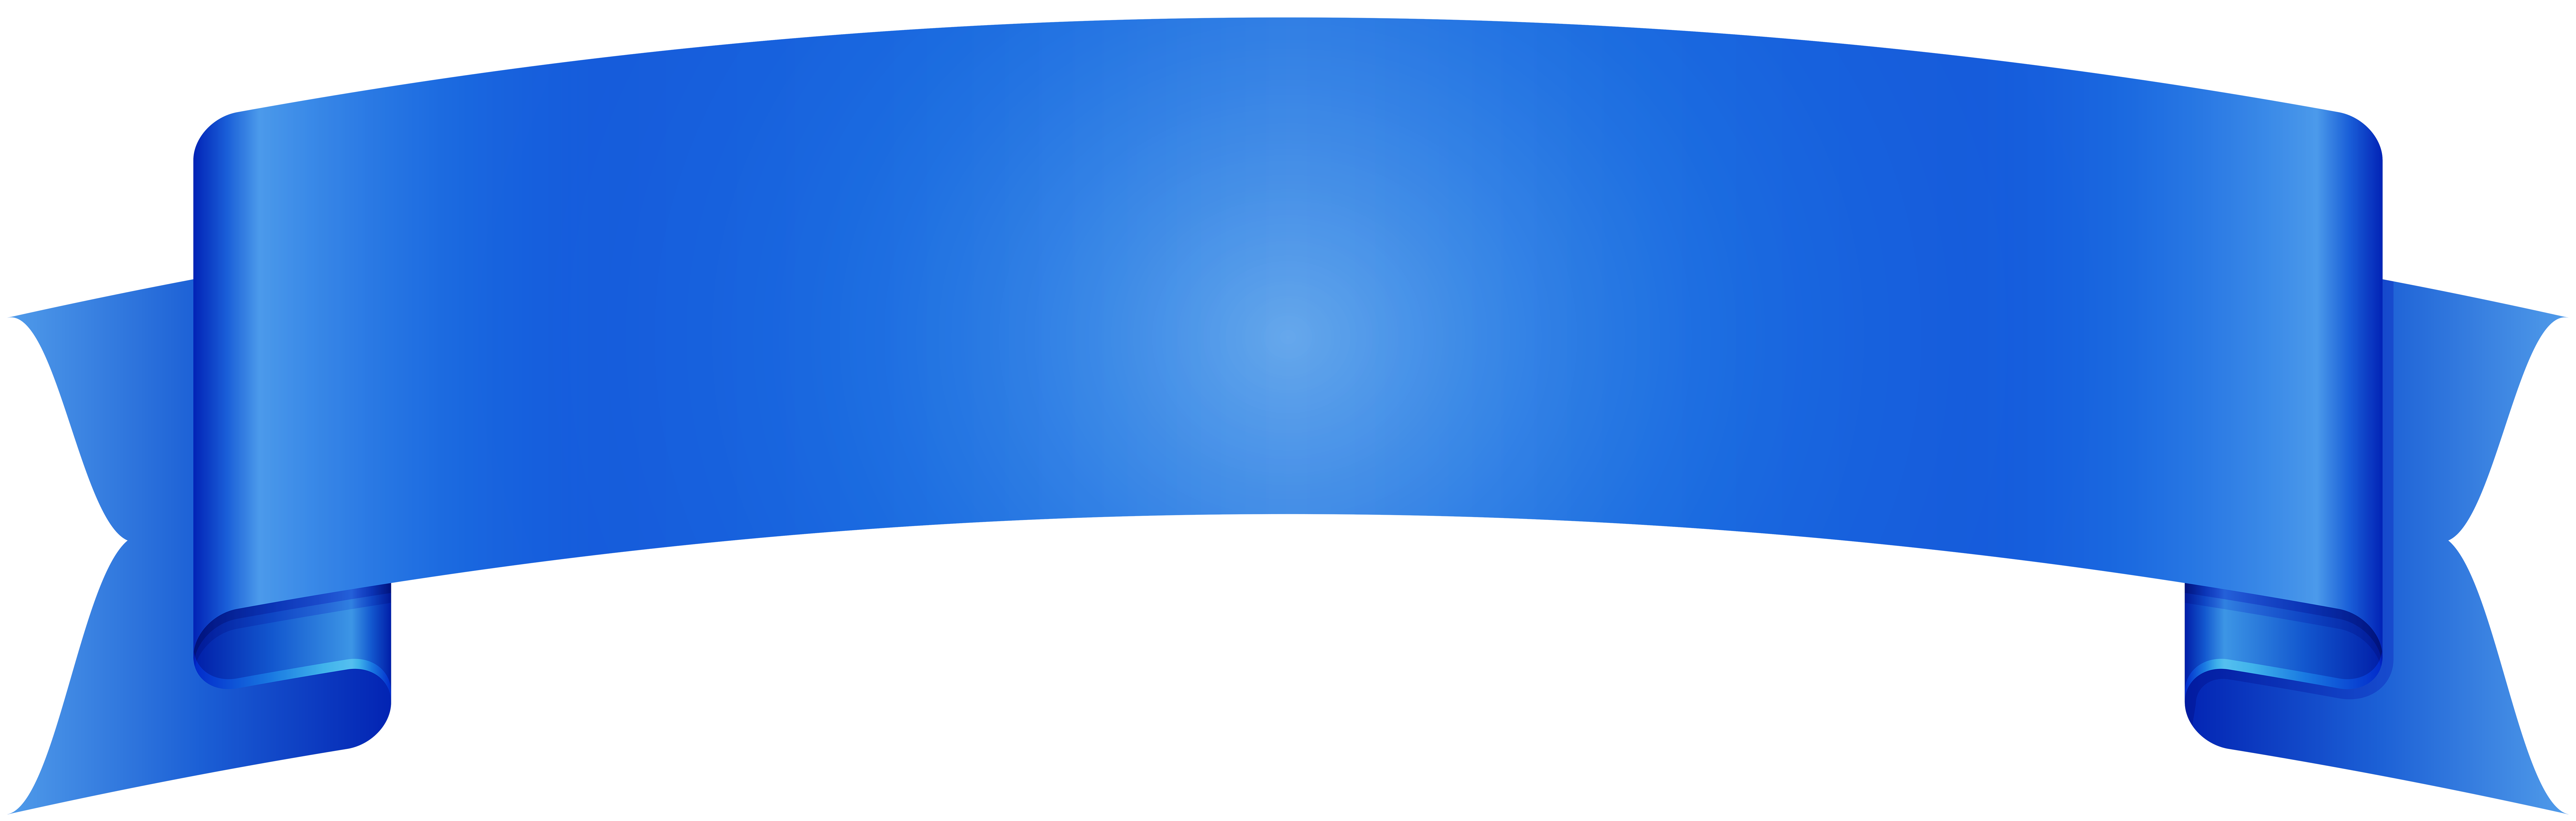 Blue Ribbon PNG Picture | PNG Arts